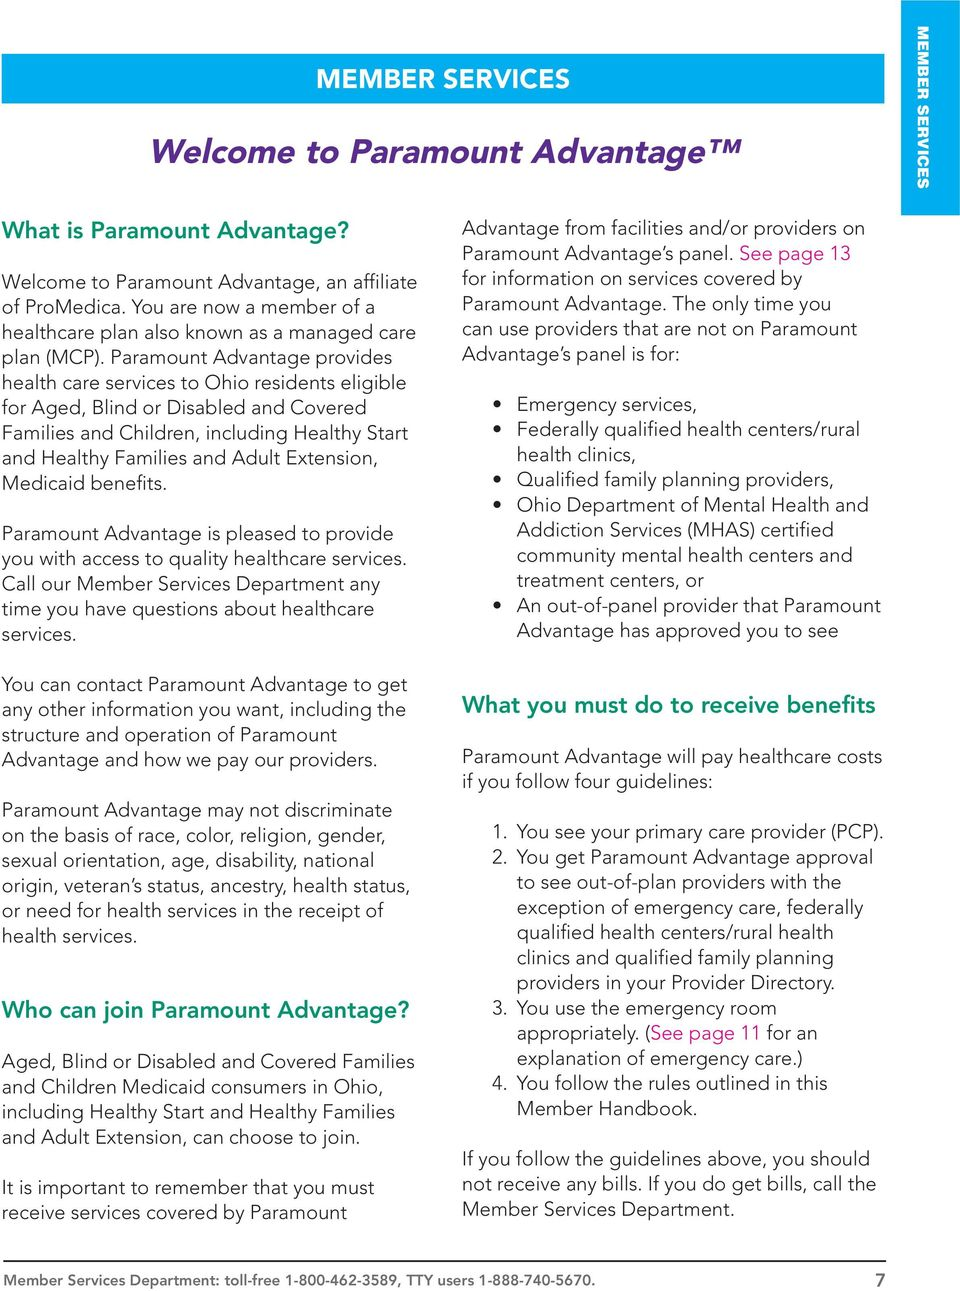 Paramount Advantage provides health care services to Ohio residents eligible for Aged, Blind or Disabled and Covered Families and Children, including Healthy Start and Healthy Families and Adult